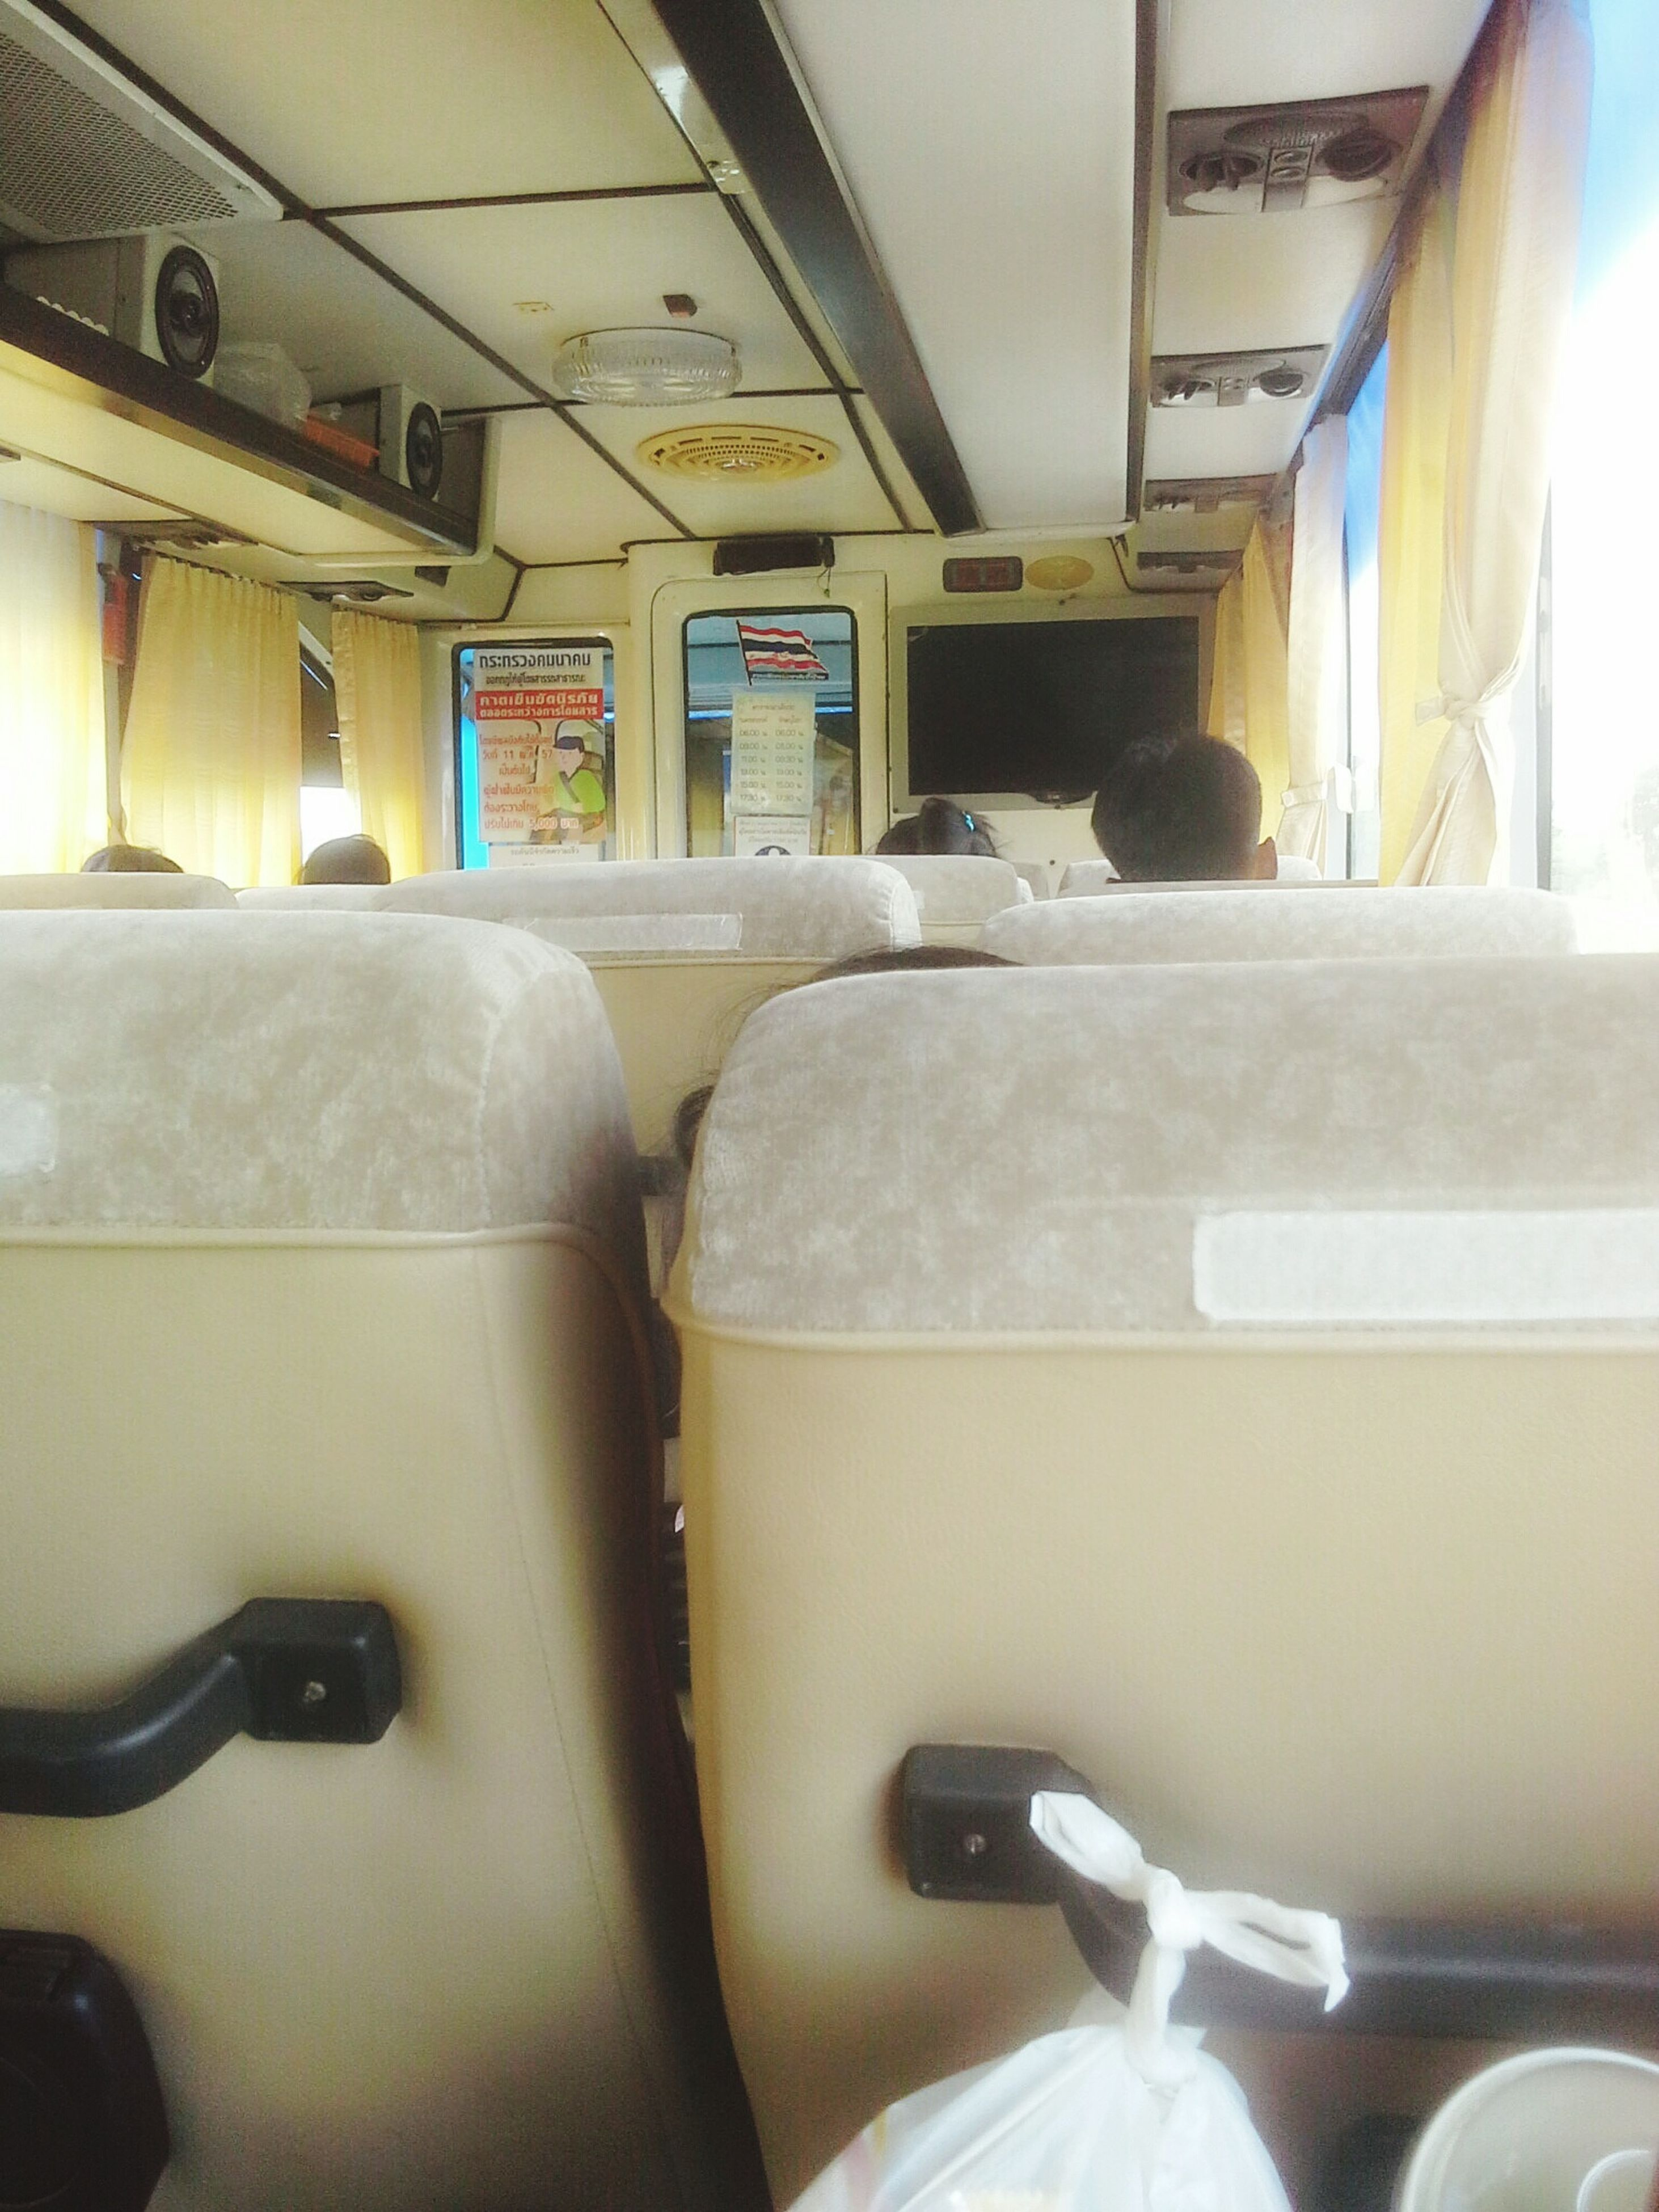 indoors, transportation, mode of transport, vehicle interior, vehicle seat, window, land vehicle, public transportation, interior, no people, absence, day, travel, empty, in a row, reflection, seat, train - vehicle, glass - material, car